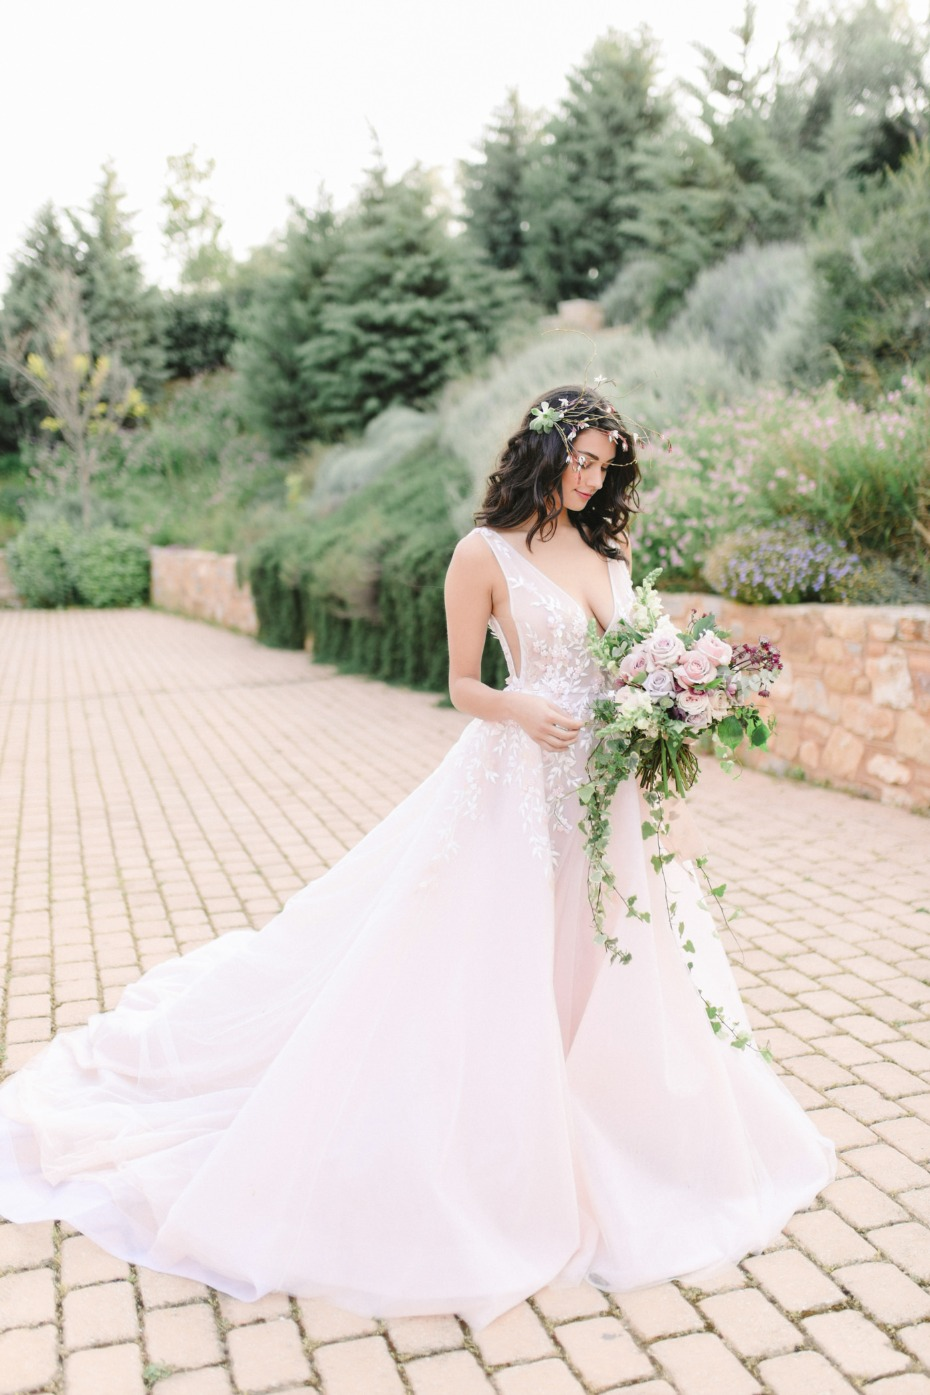 Blush wedding dress by Nathalie Karam